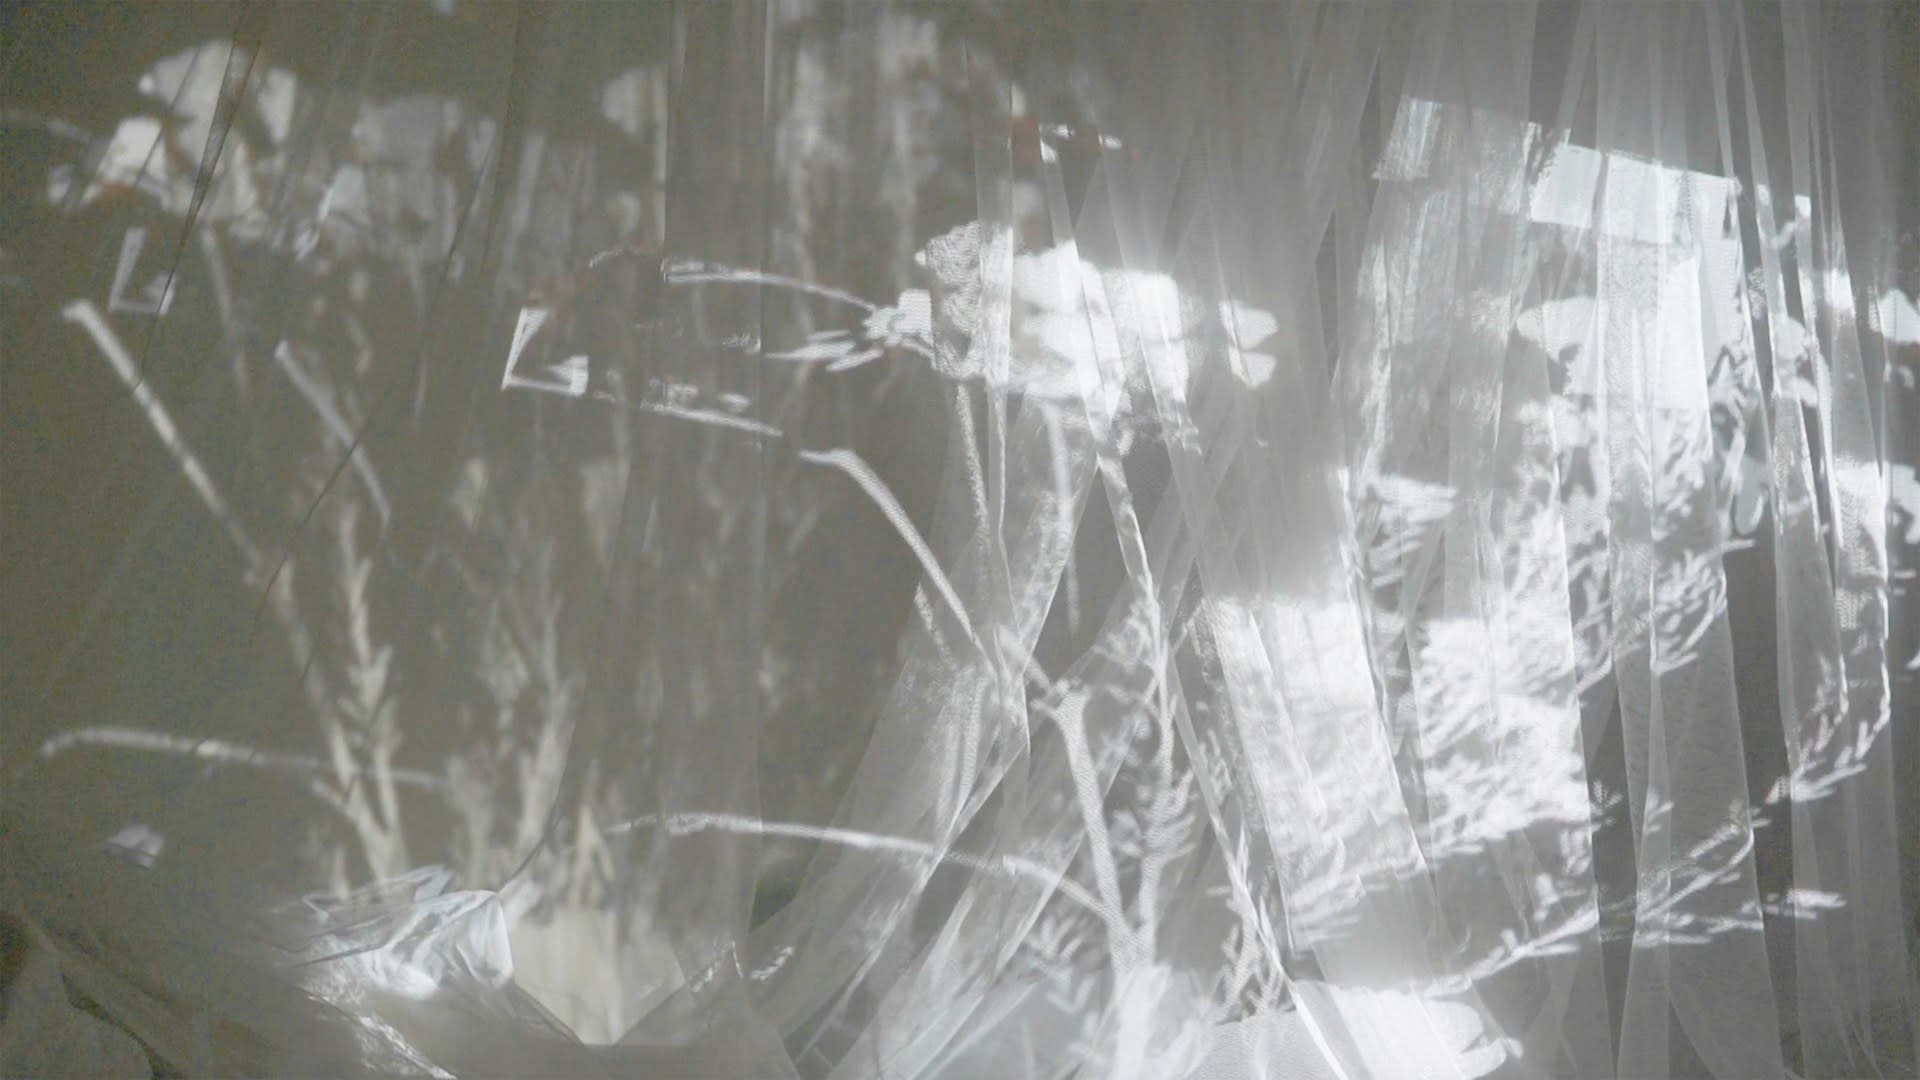 Lunhua Kong, 'Constant conjunction', video still, 2020